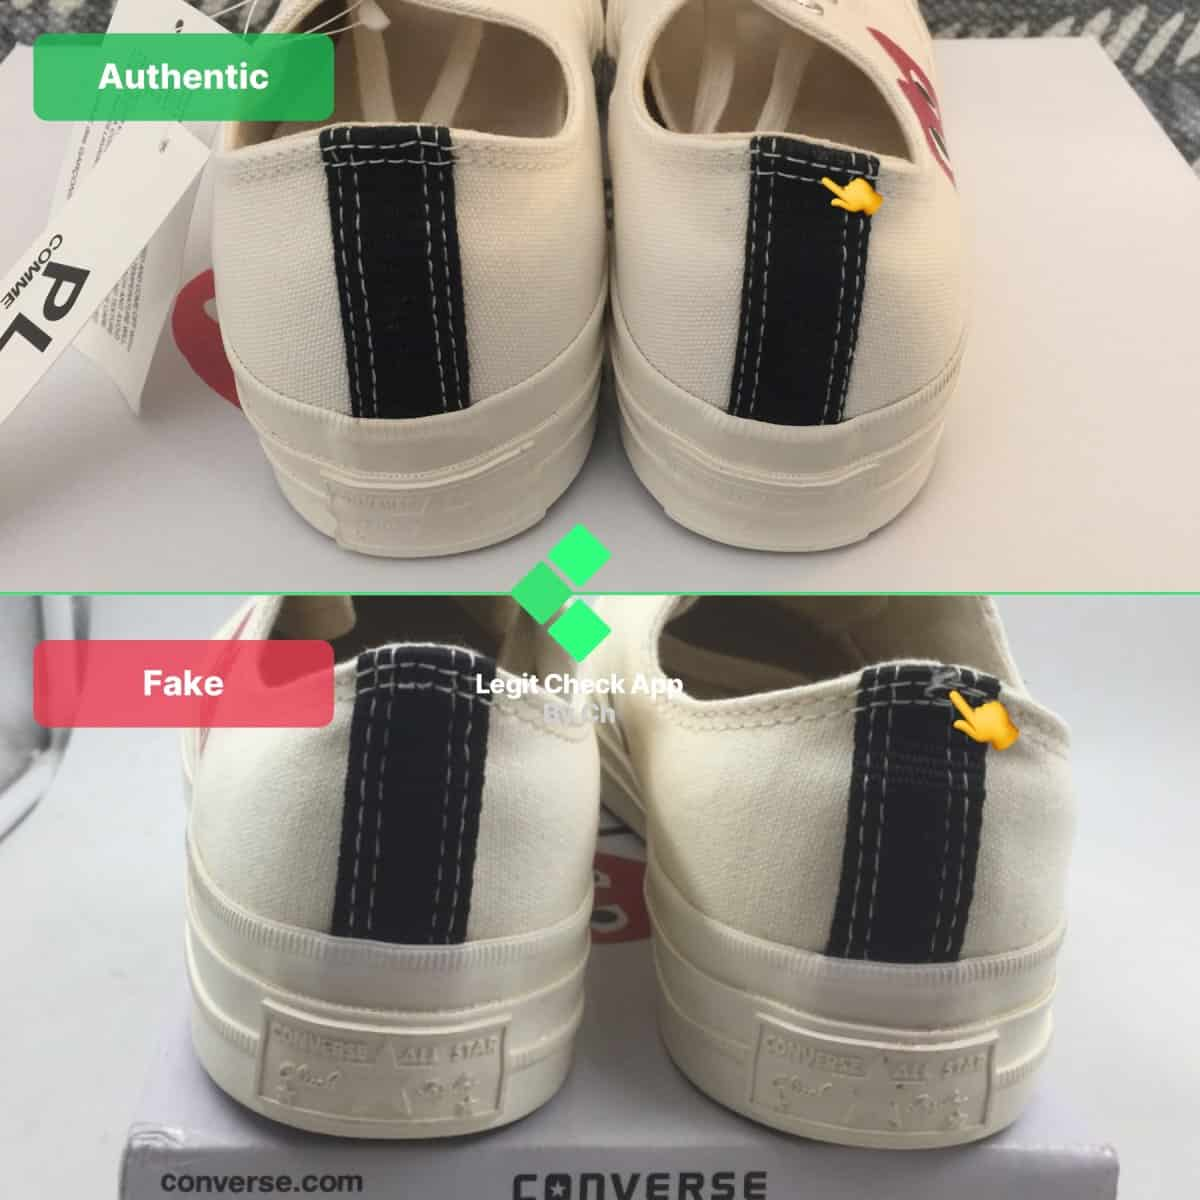 How To Spot Fake Comme Des Garcons CDG Converse Sneakers ...